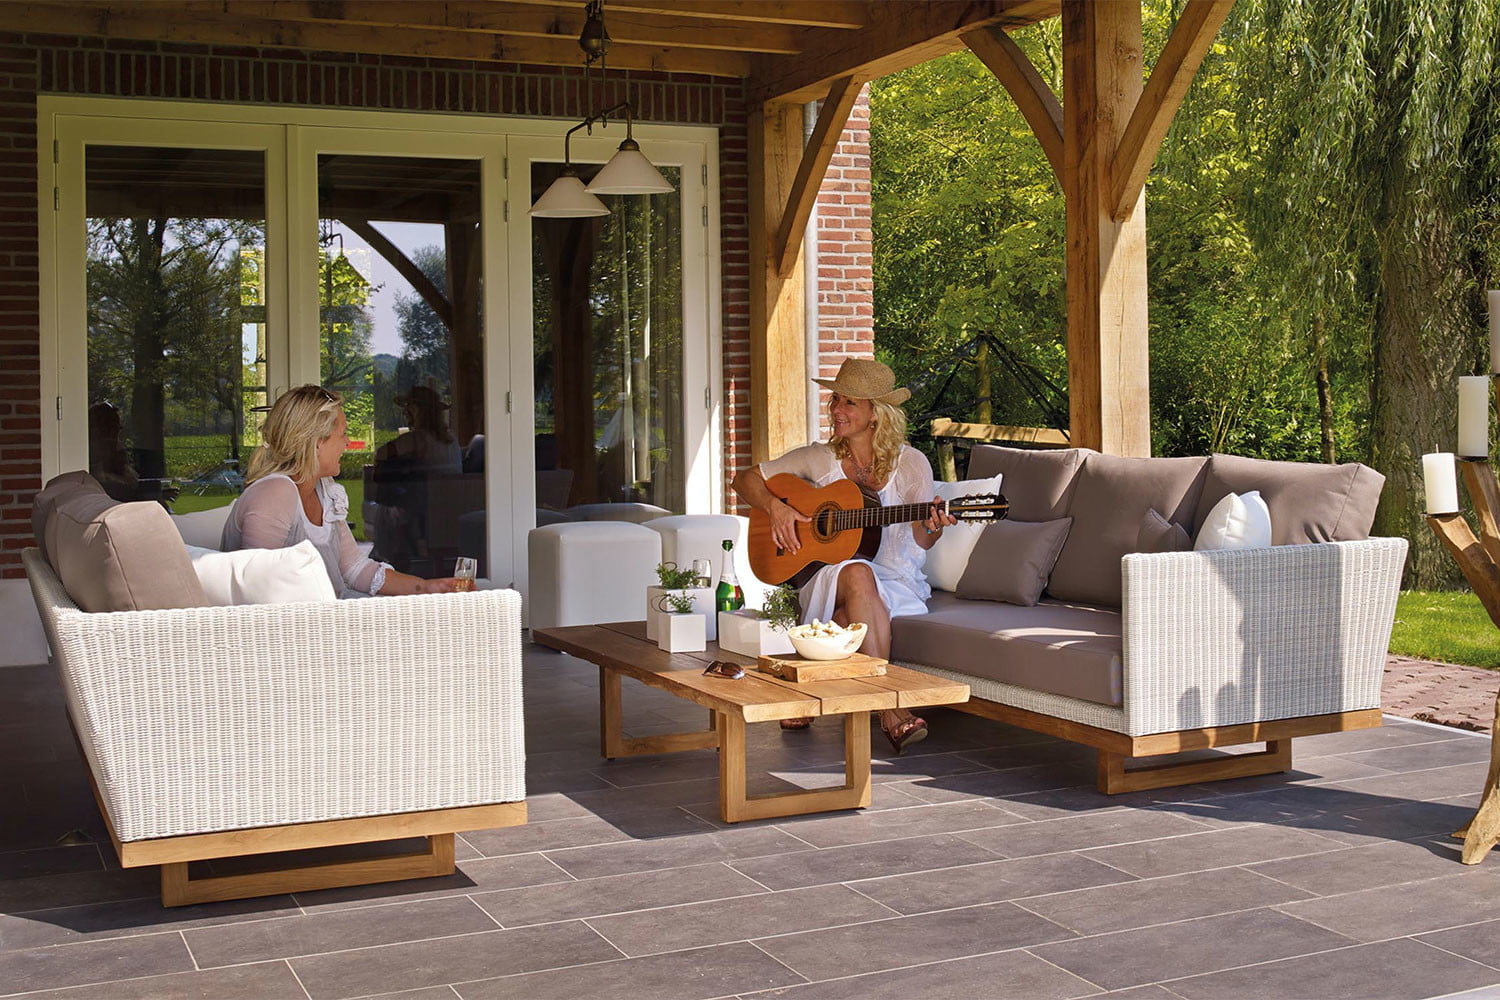 The Most Attractive Mid Century Modern Patio Furniture Available Now 21oak